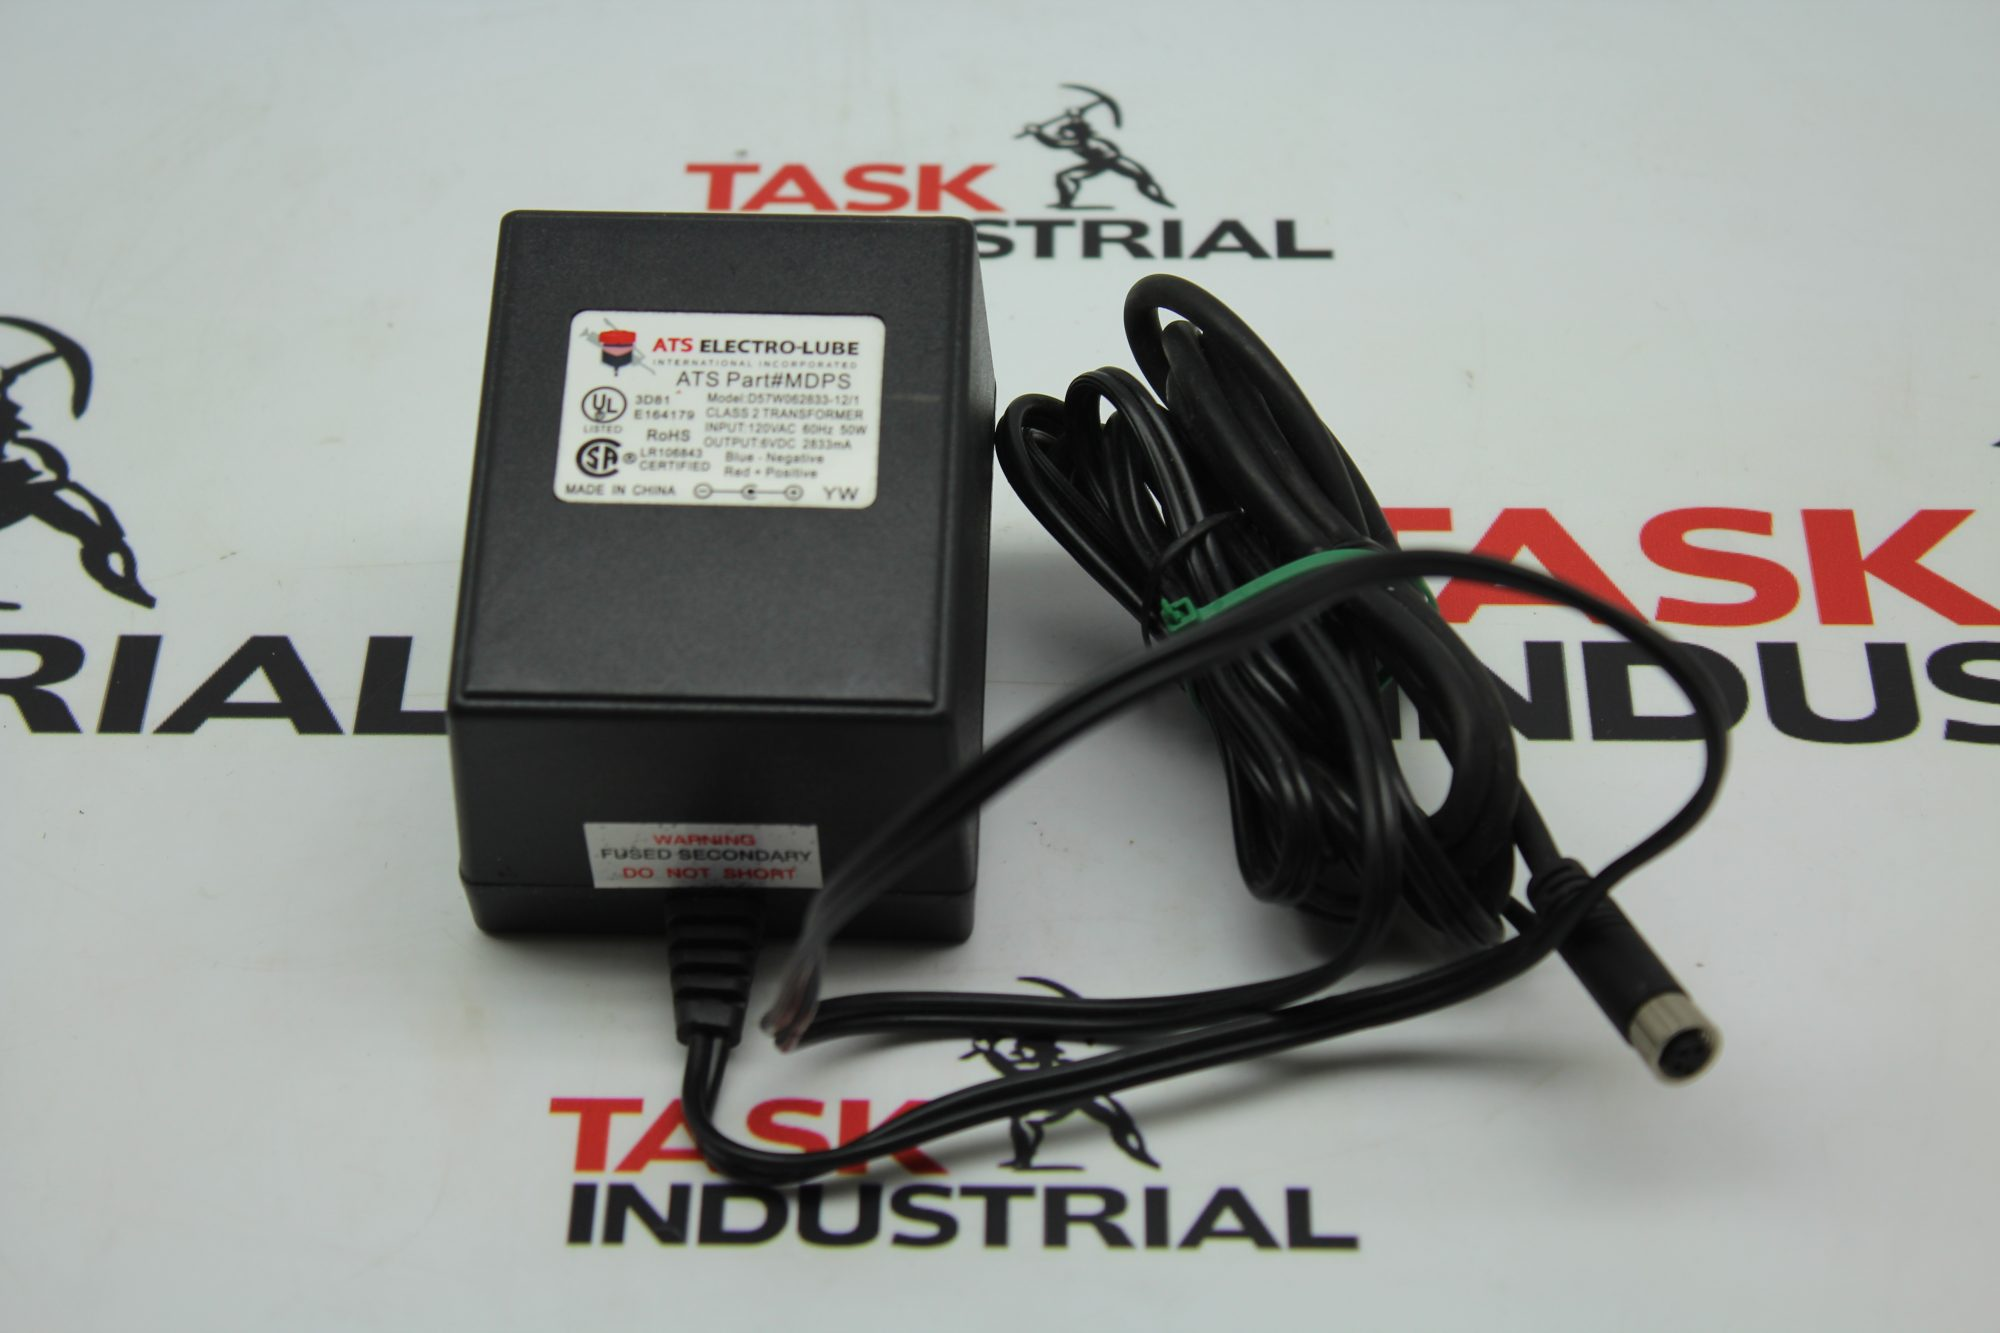 ATS Electro-Lube Model: D57W062833-12/1 Transformer MDPS Power Supply